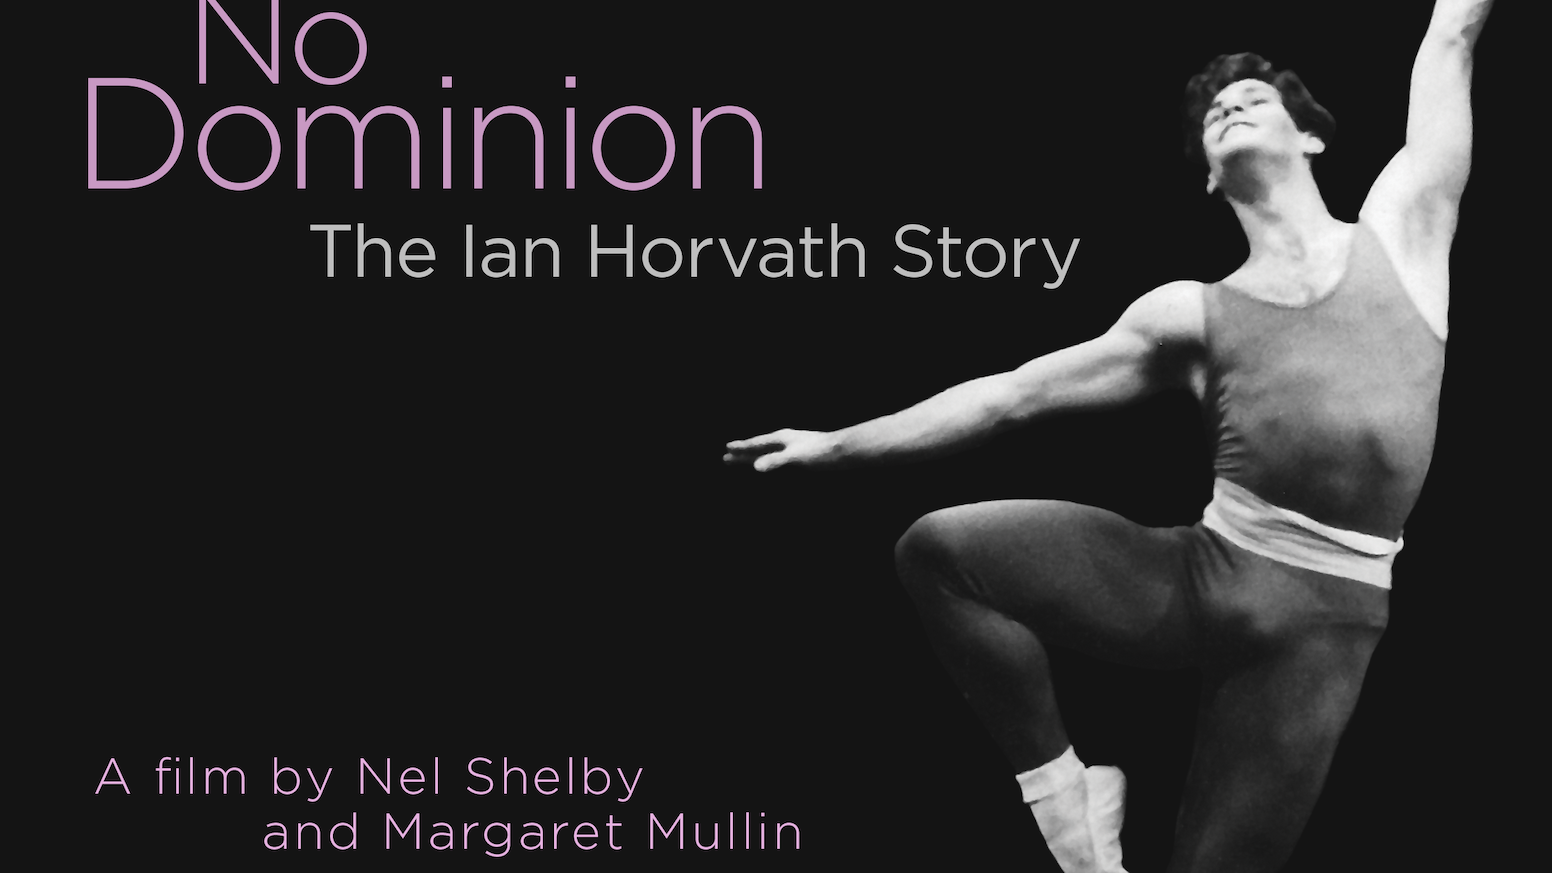 Celebrating the remarkable life the late Ian Horvath, dance champion and AIDS activist, with new dance performances and interviews.